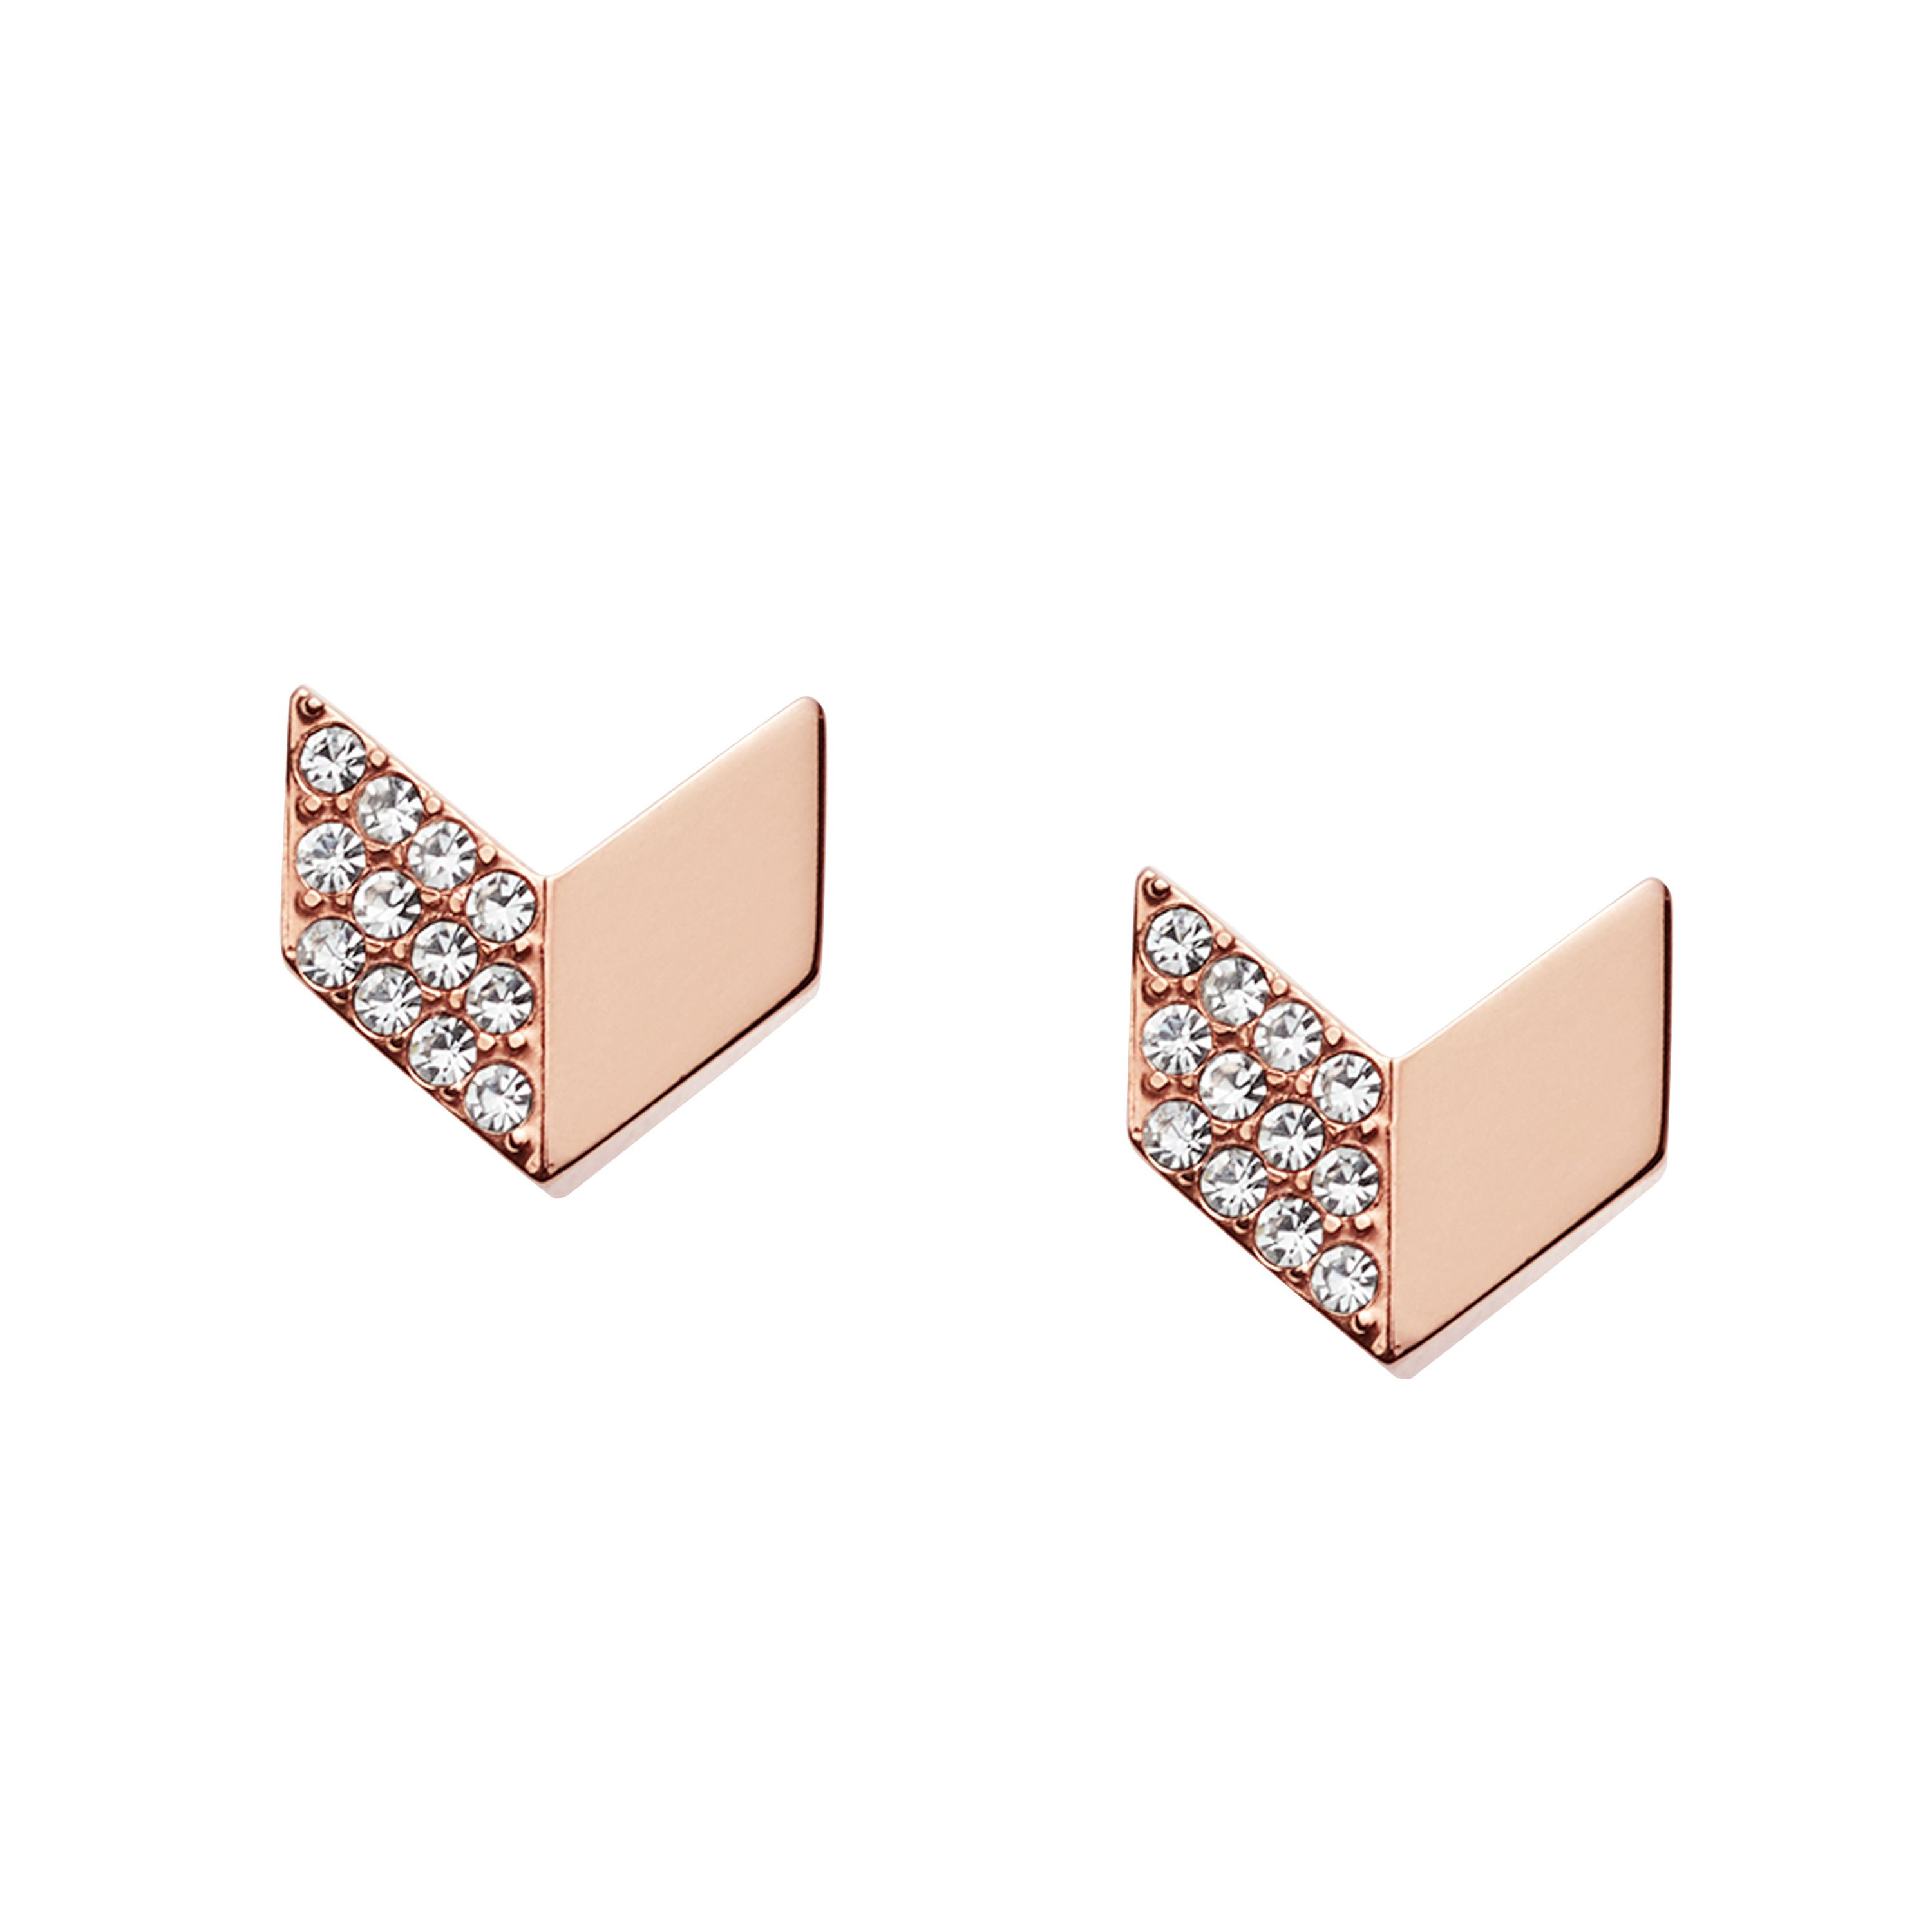 fossil jf02423791 ladies earring studs